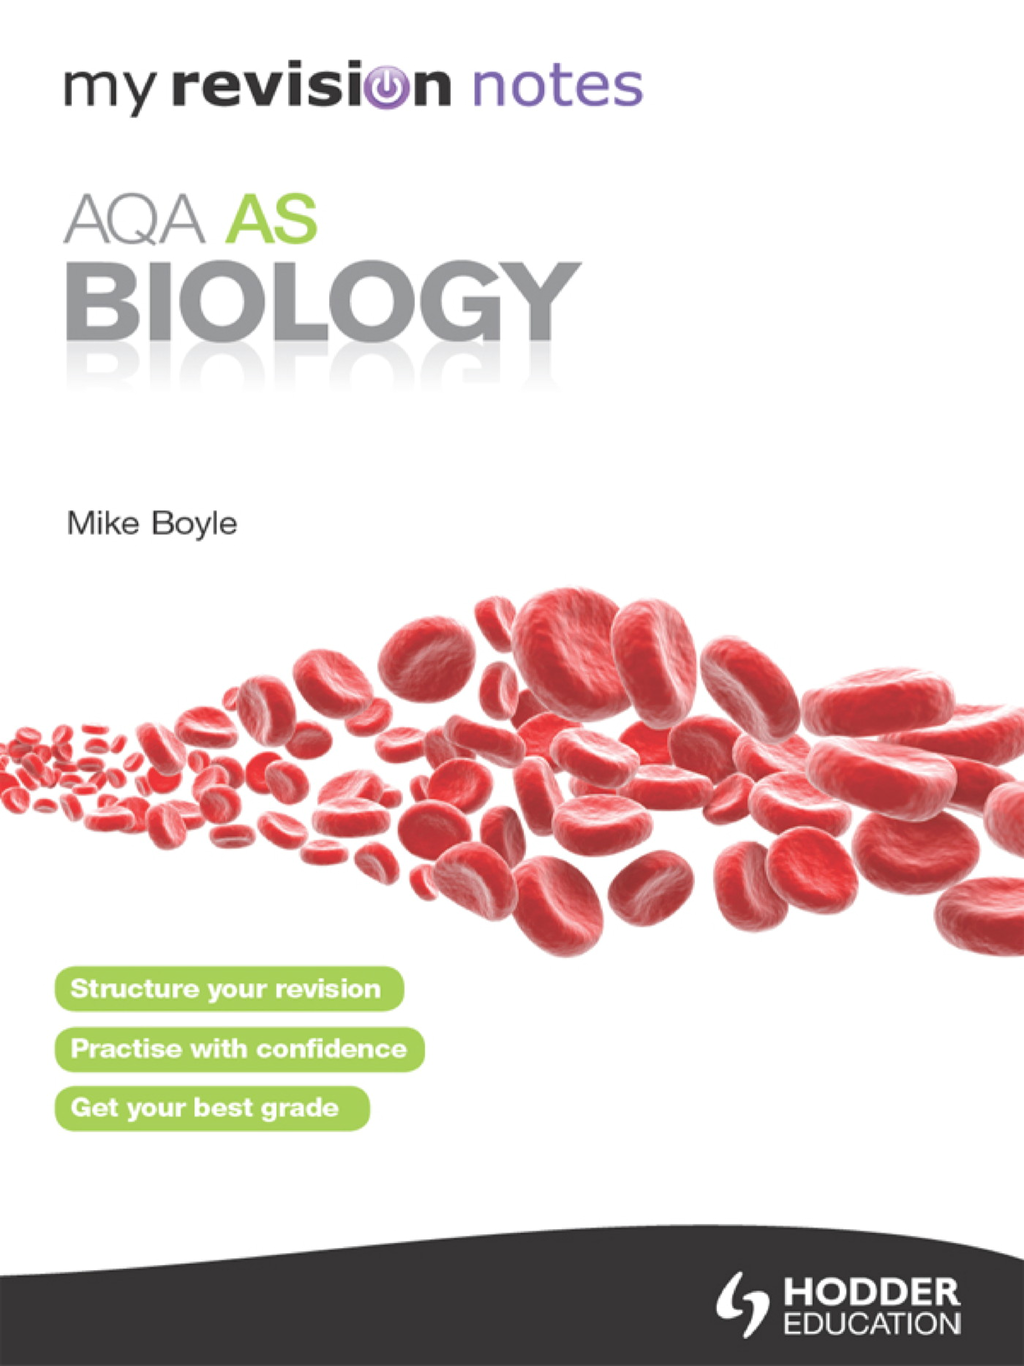 My Revision Notes: AQA AS Biology ePub